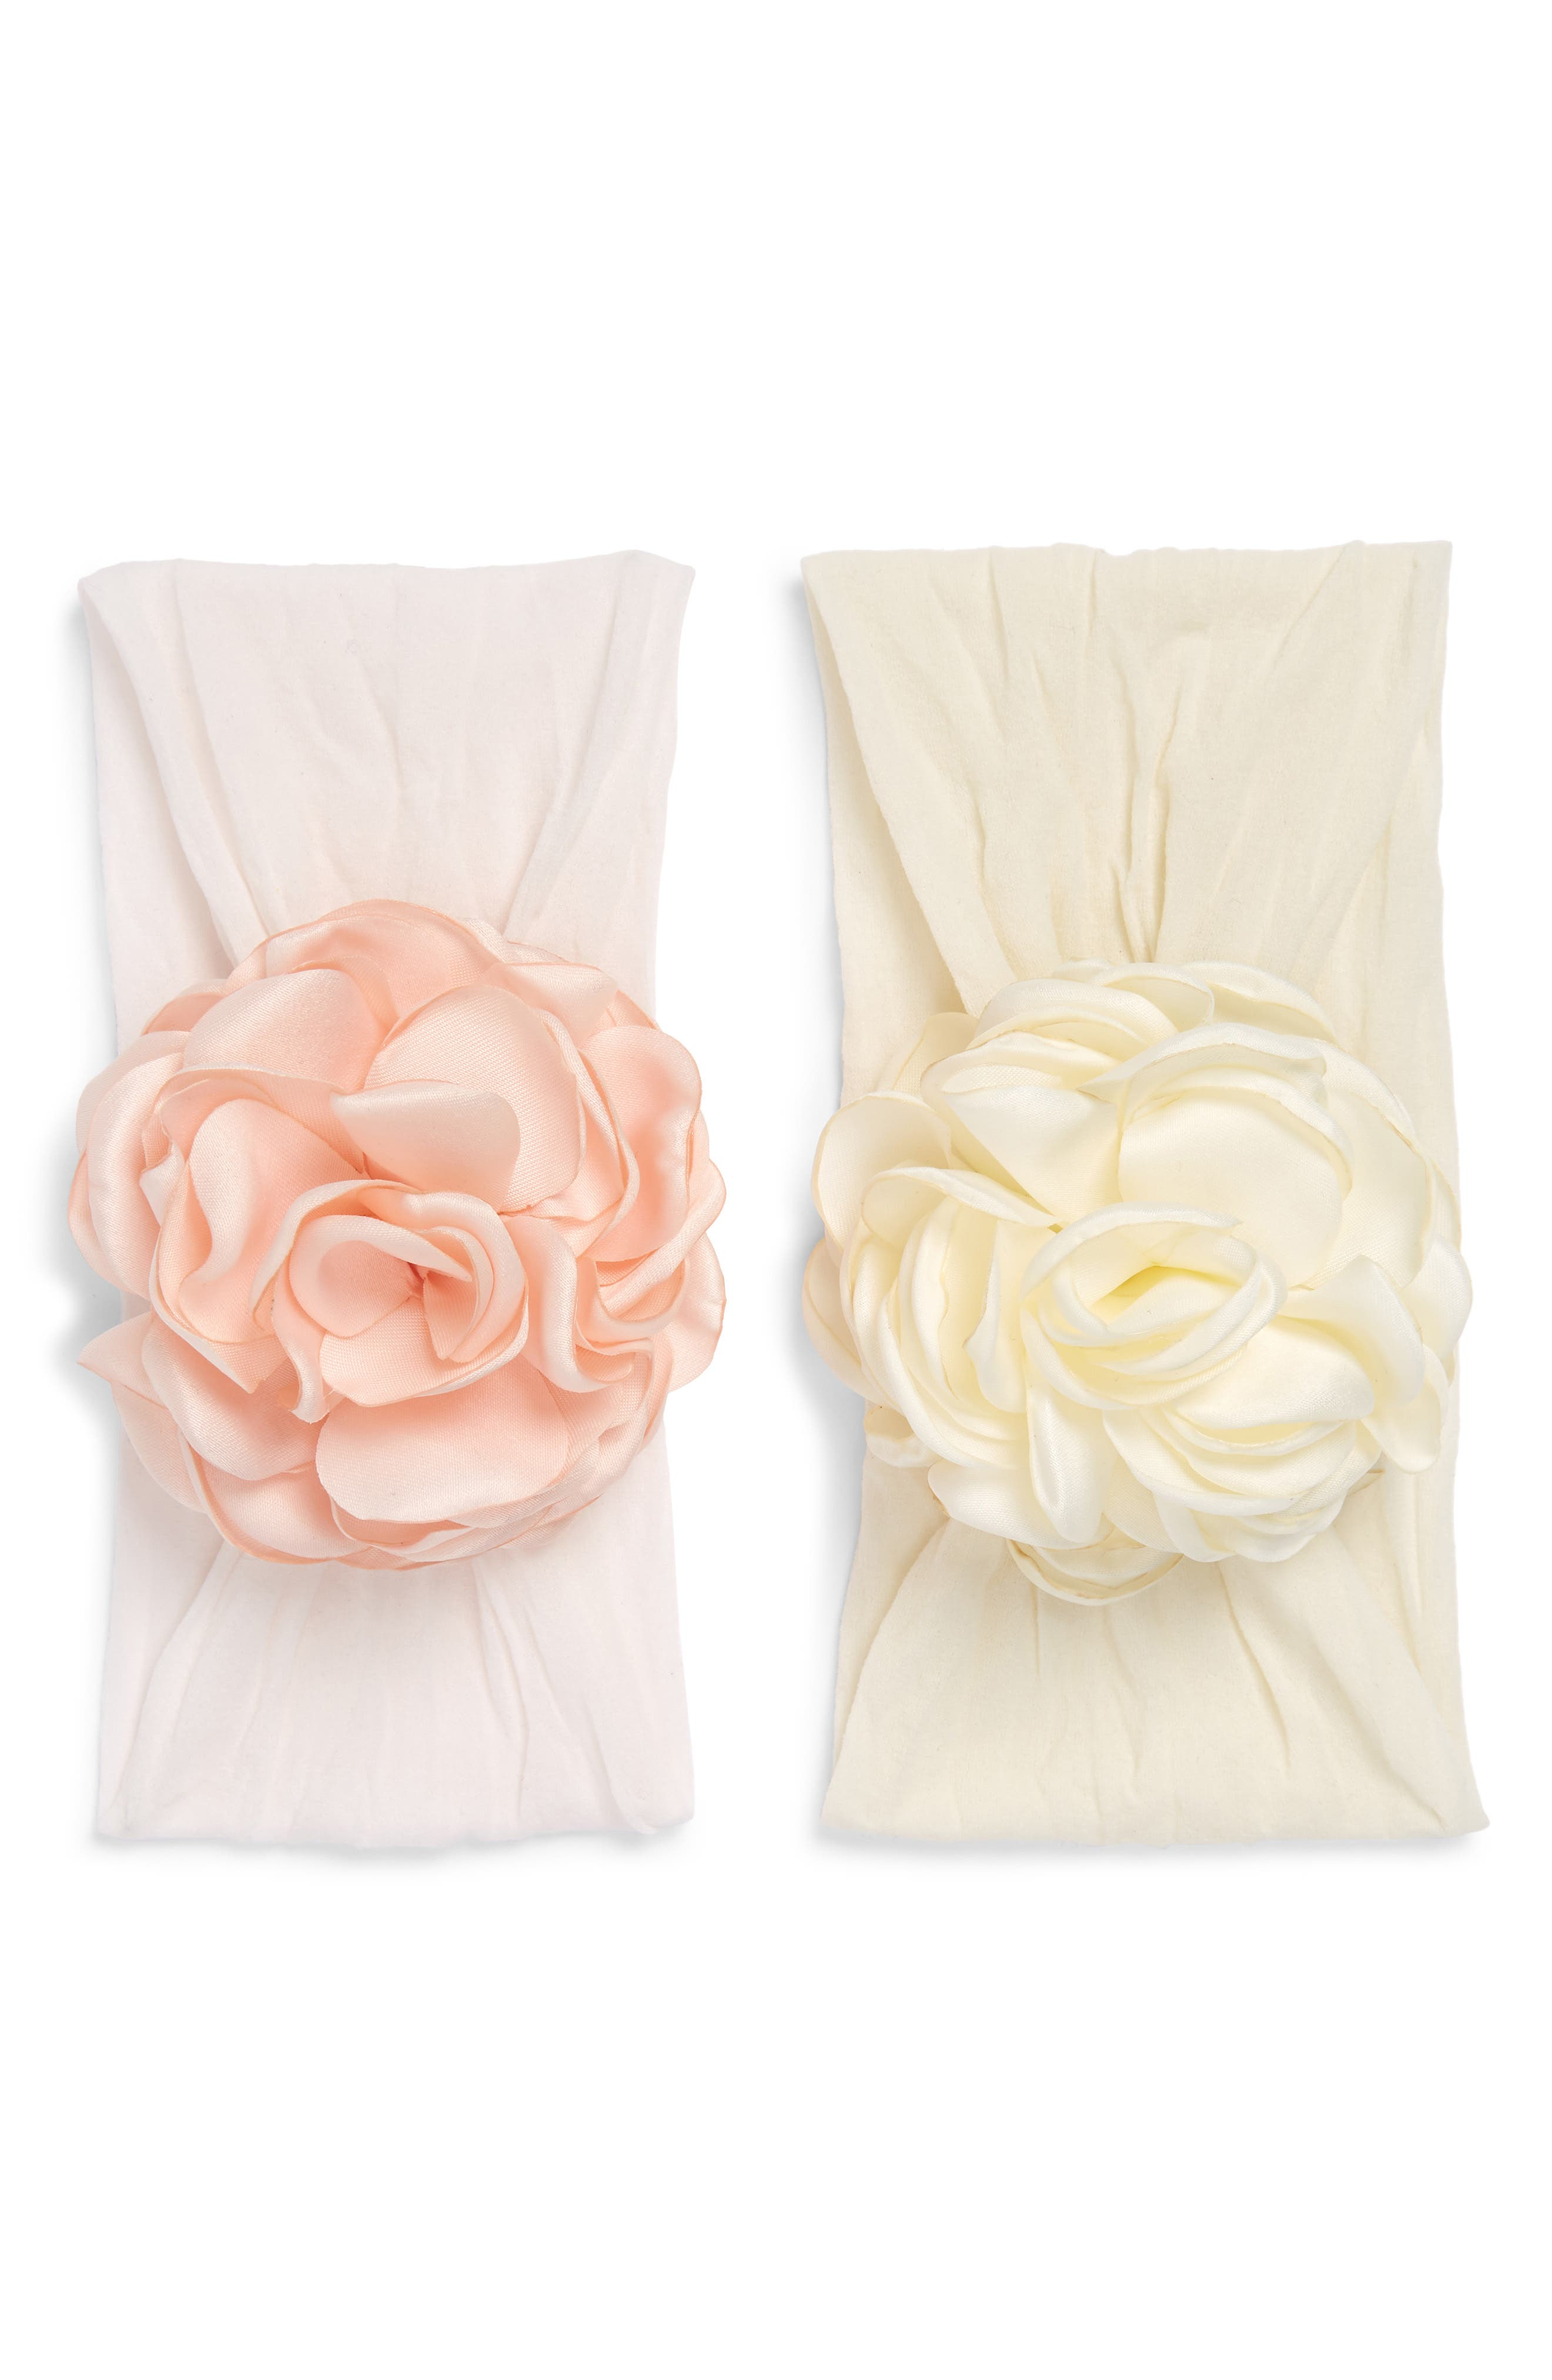 BABY BLING 2-Pack Flower Head Wraps, Main, color, BALLET PINK/ IVORY